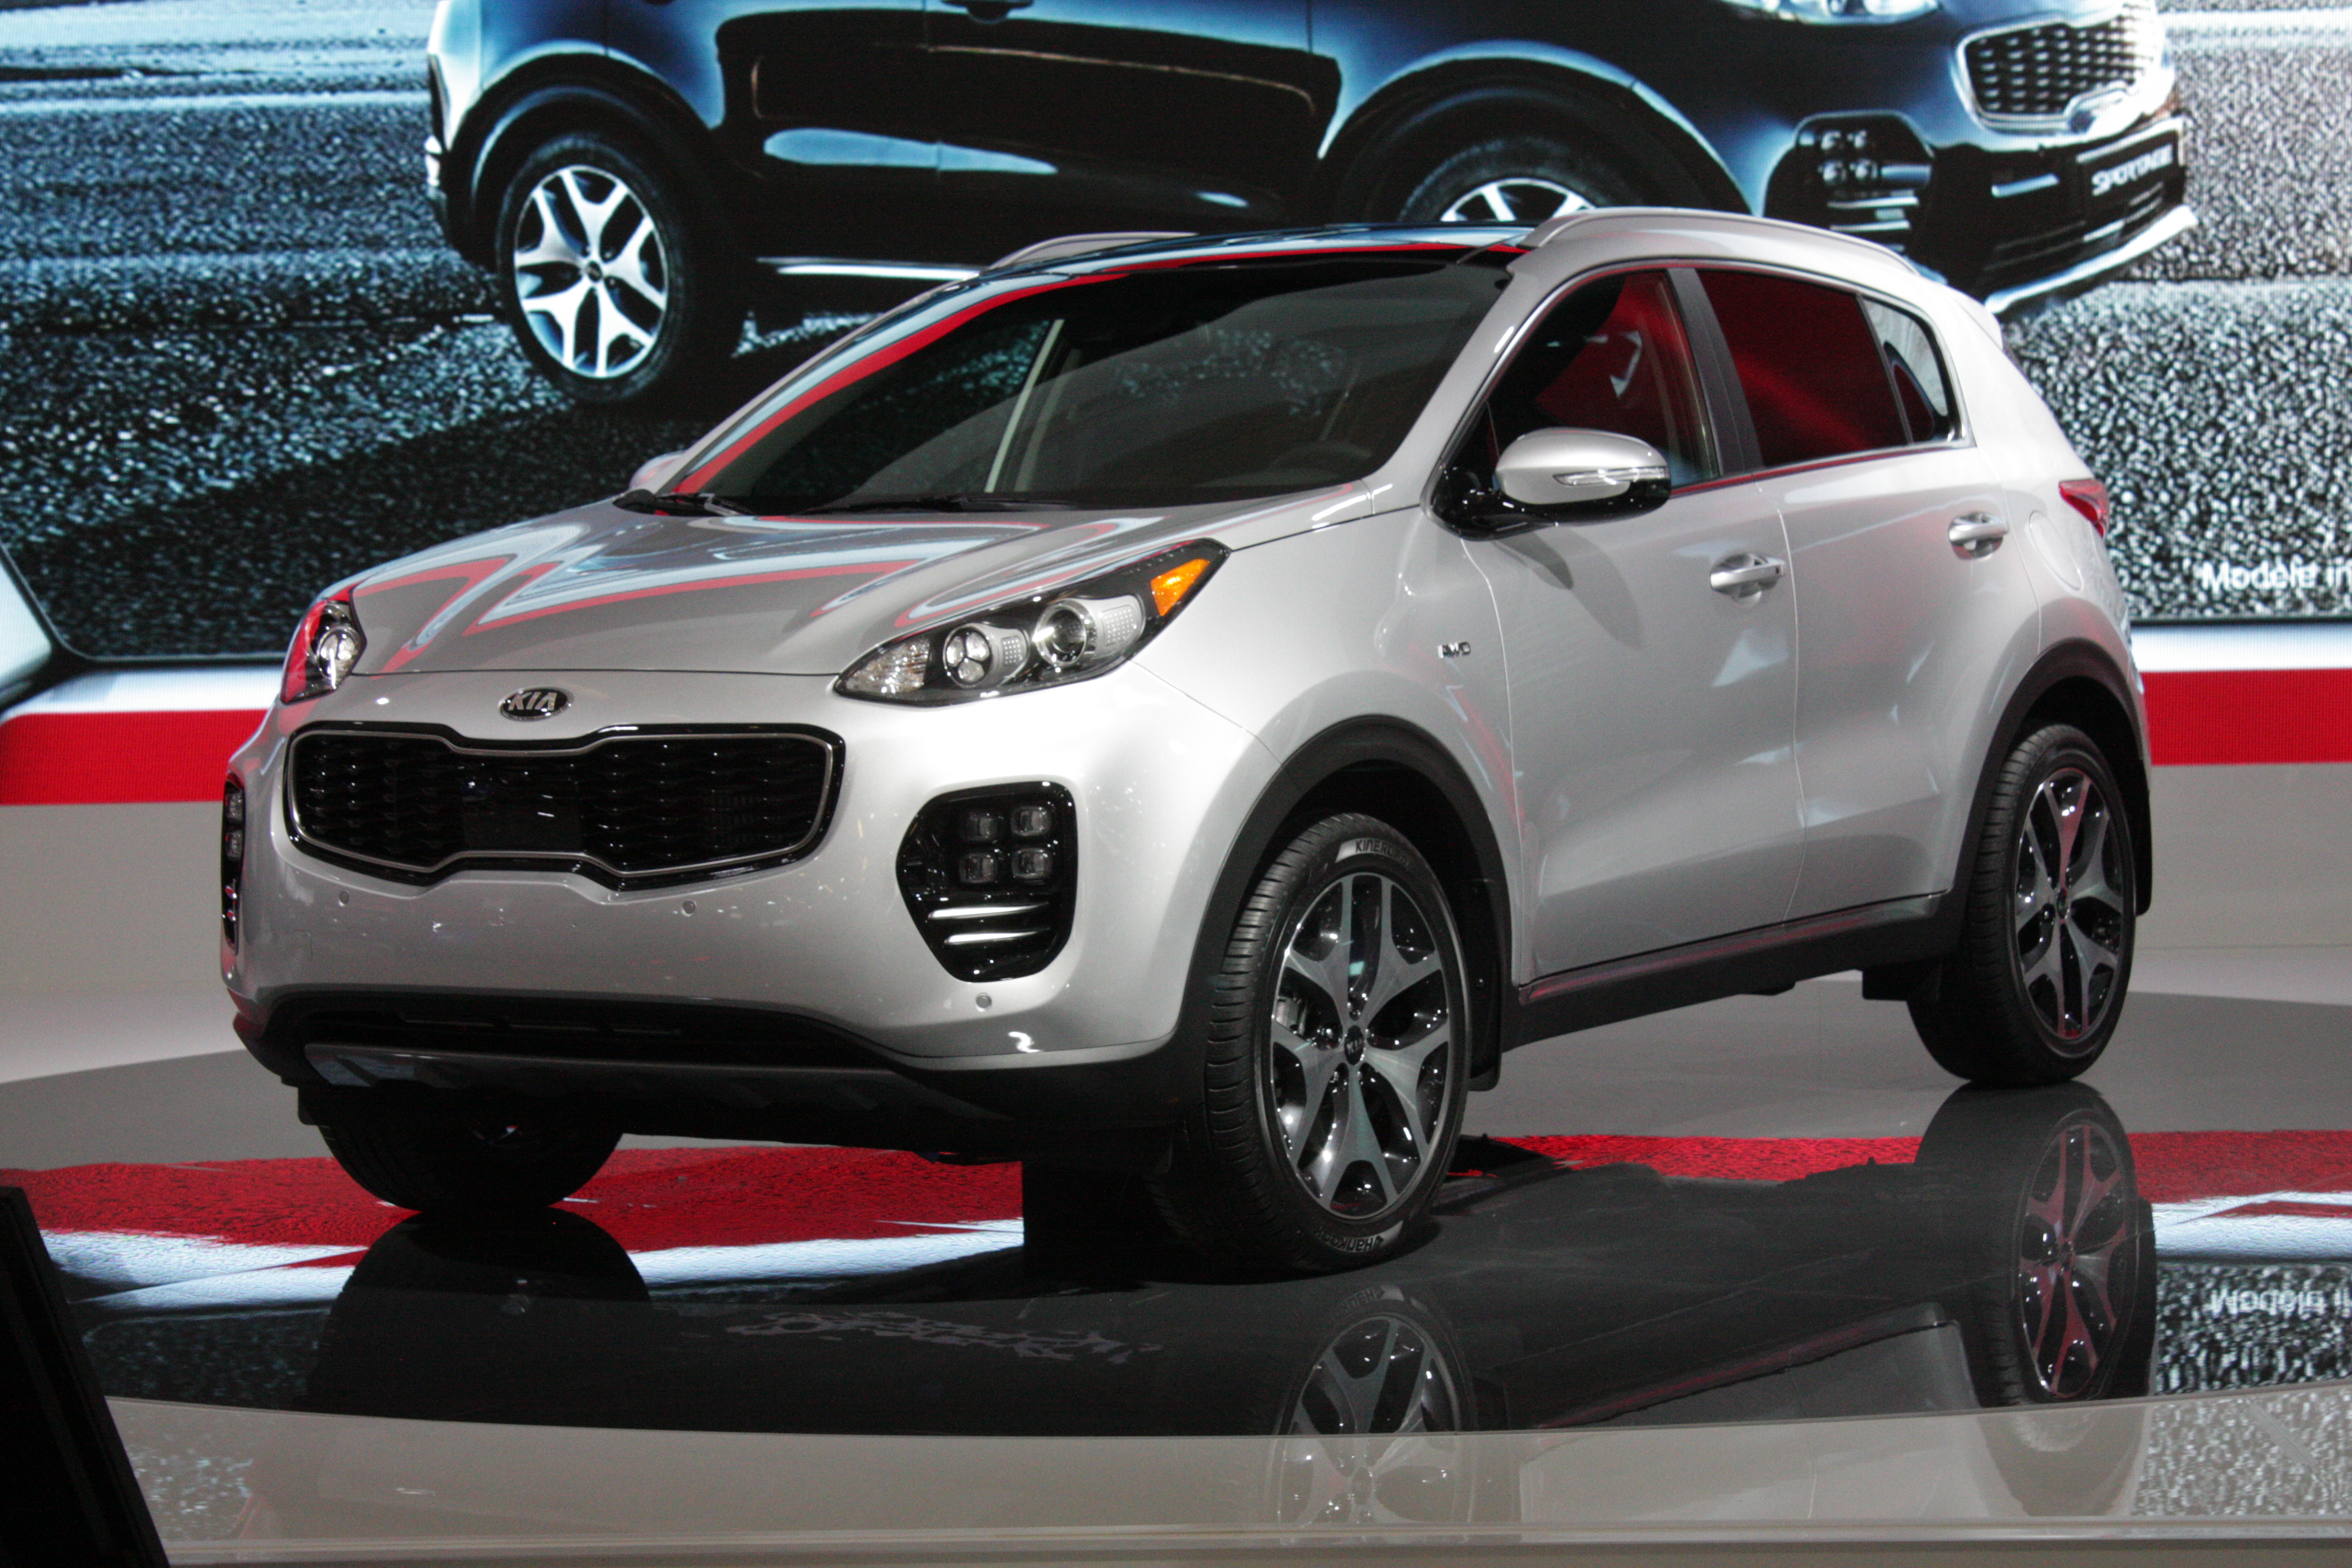 Kia showed its 2017 Sportage, a redesigned compact crossover that looks more German than Korean. Also making a debut (but not pictured) is a refreshed 2016 Optima family sedan.